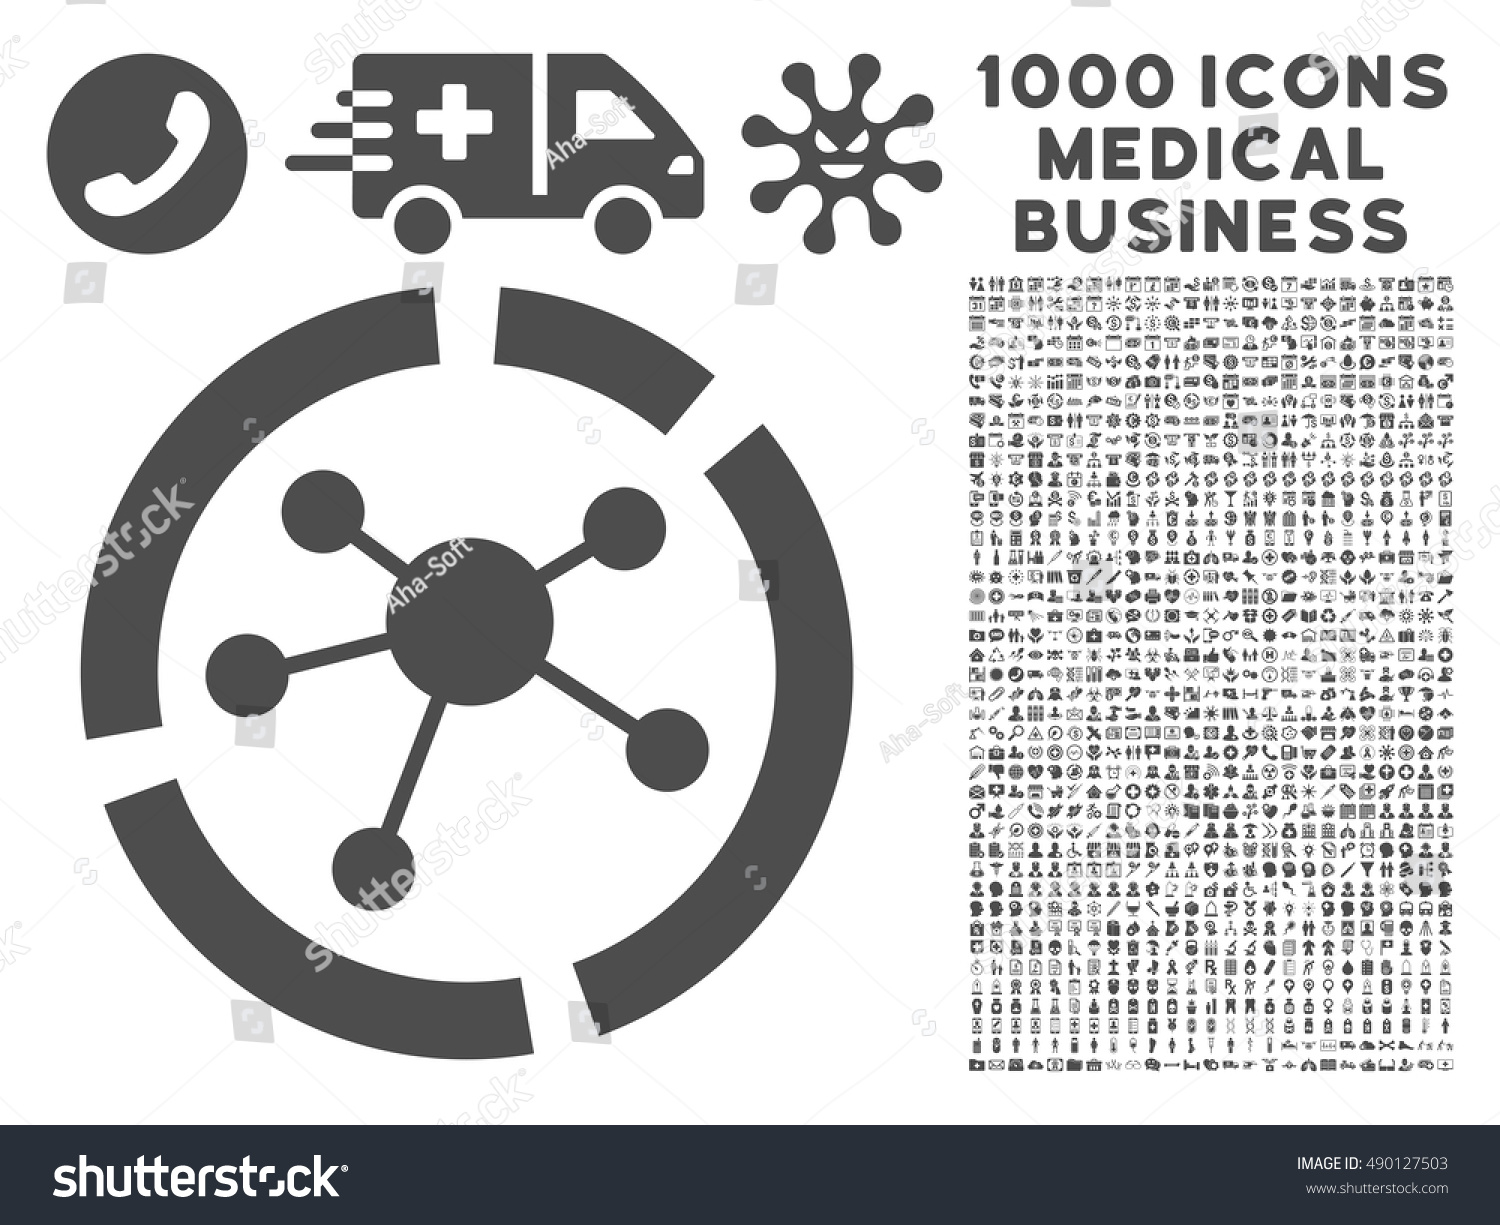 Gray Connections Diagram Icon 1000 Medical Stock Vector (Royalty ...